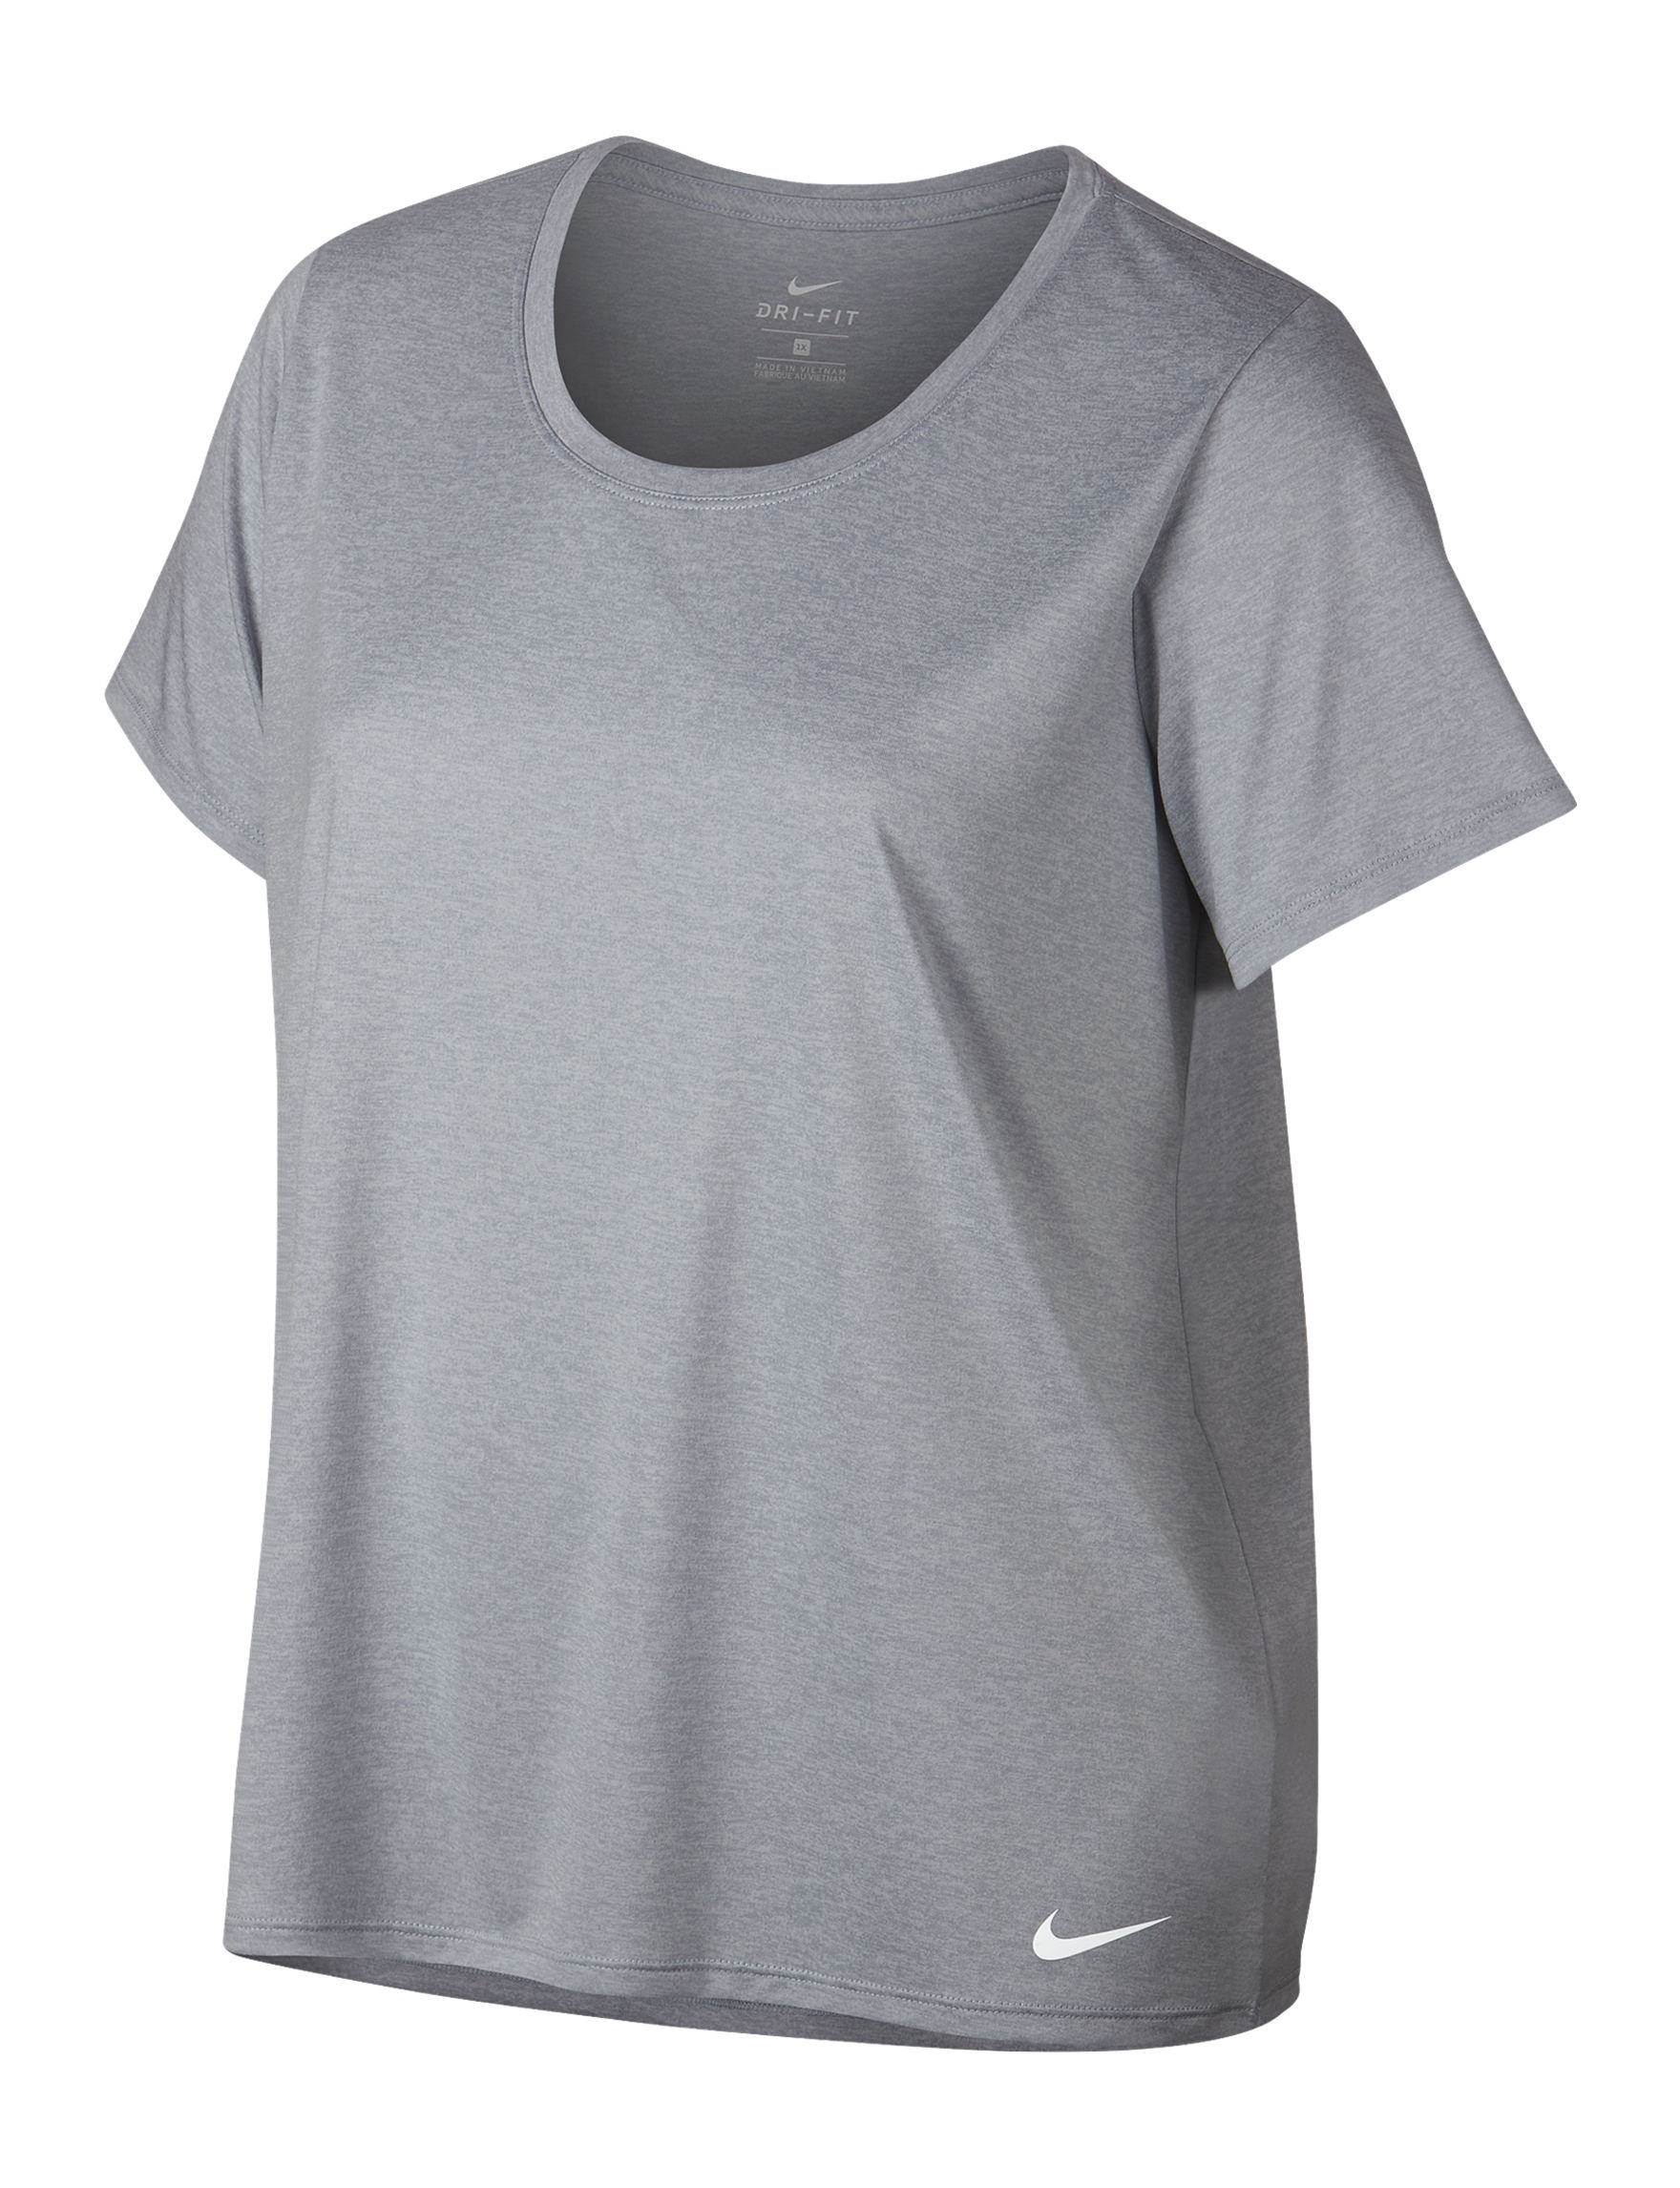 Nike Wolf Grey / White Active Tees & Tanks